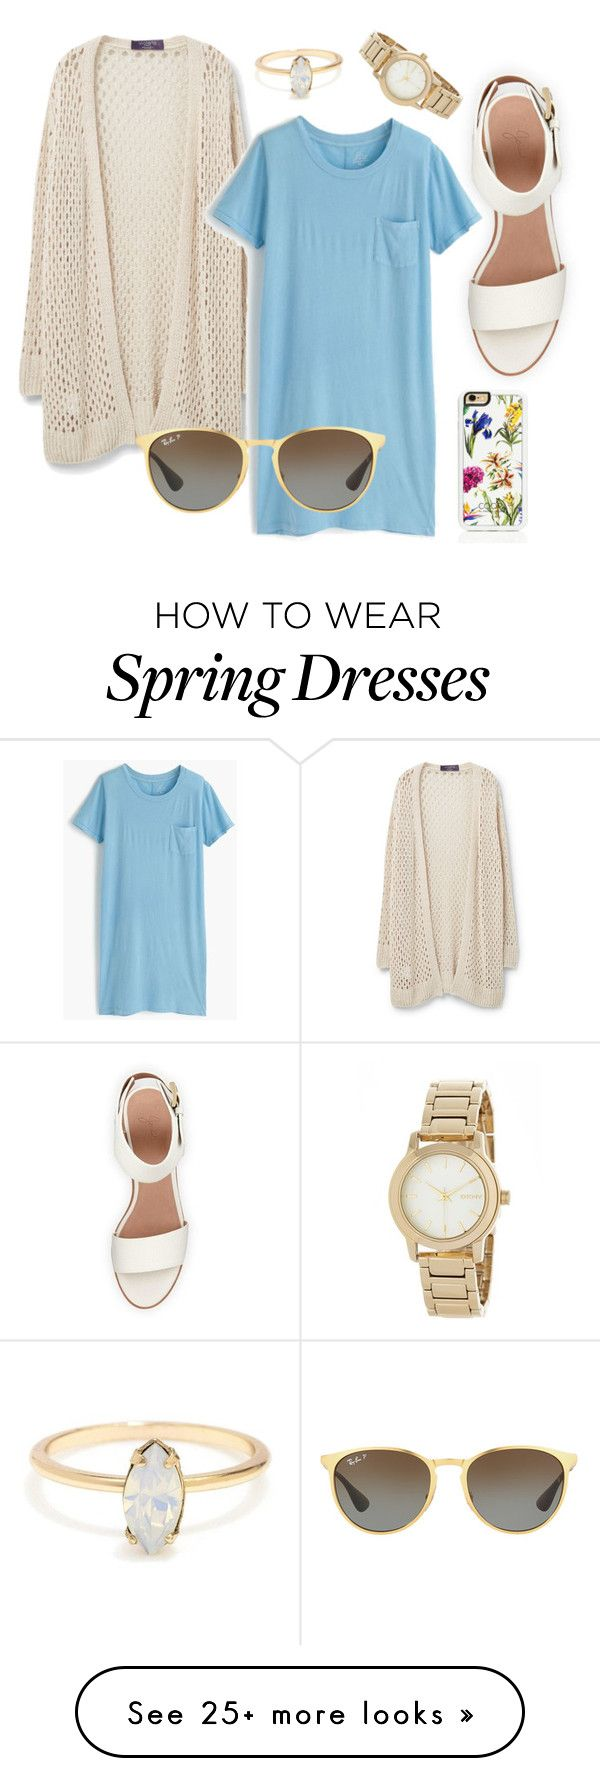 Im feeling: spring. by lilynewton on Polyvore featuring Violeta by Mango, BEA, J.Crew, Trelise Cooper, Ray-Ban and DKNY